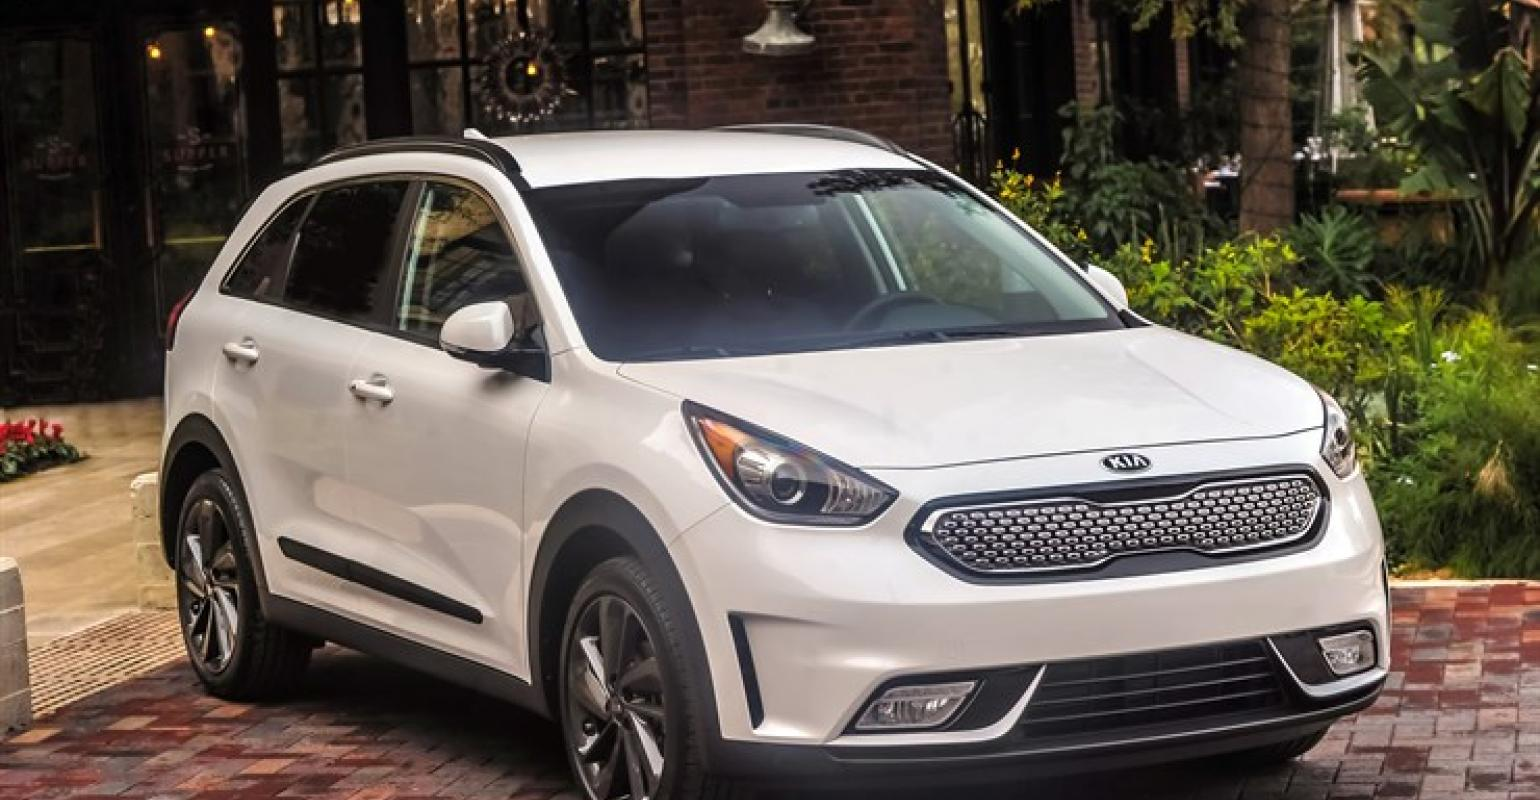 Kia Niro Hybrid Cuv On Since February In Us